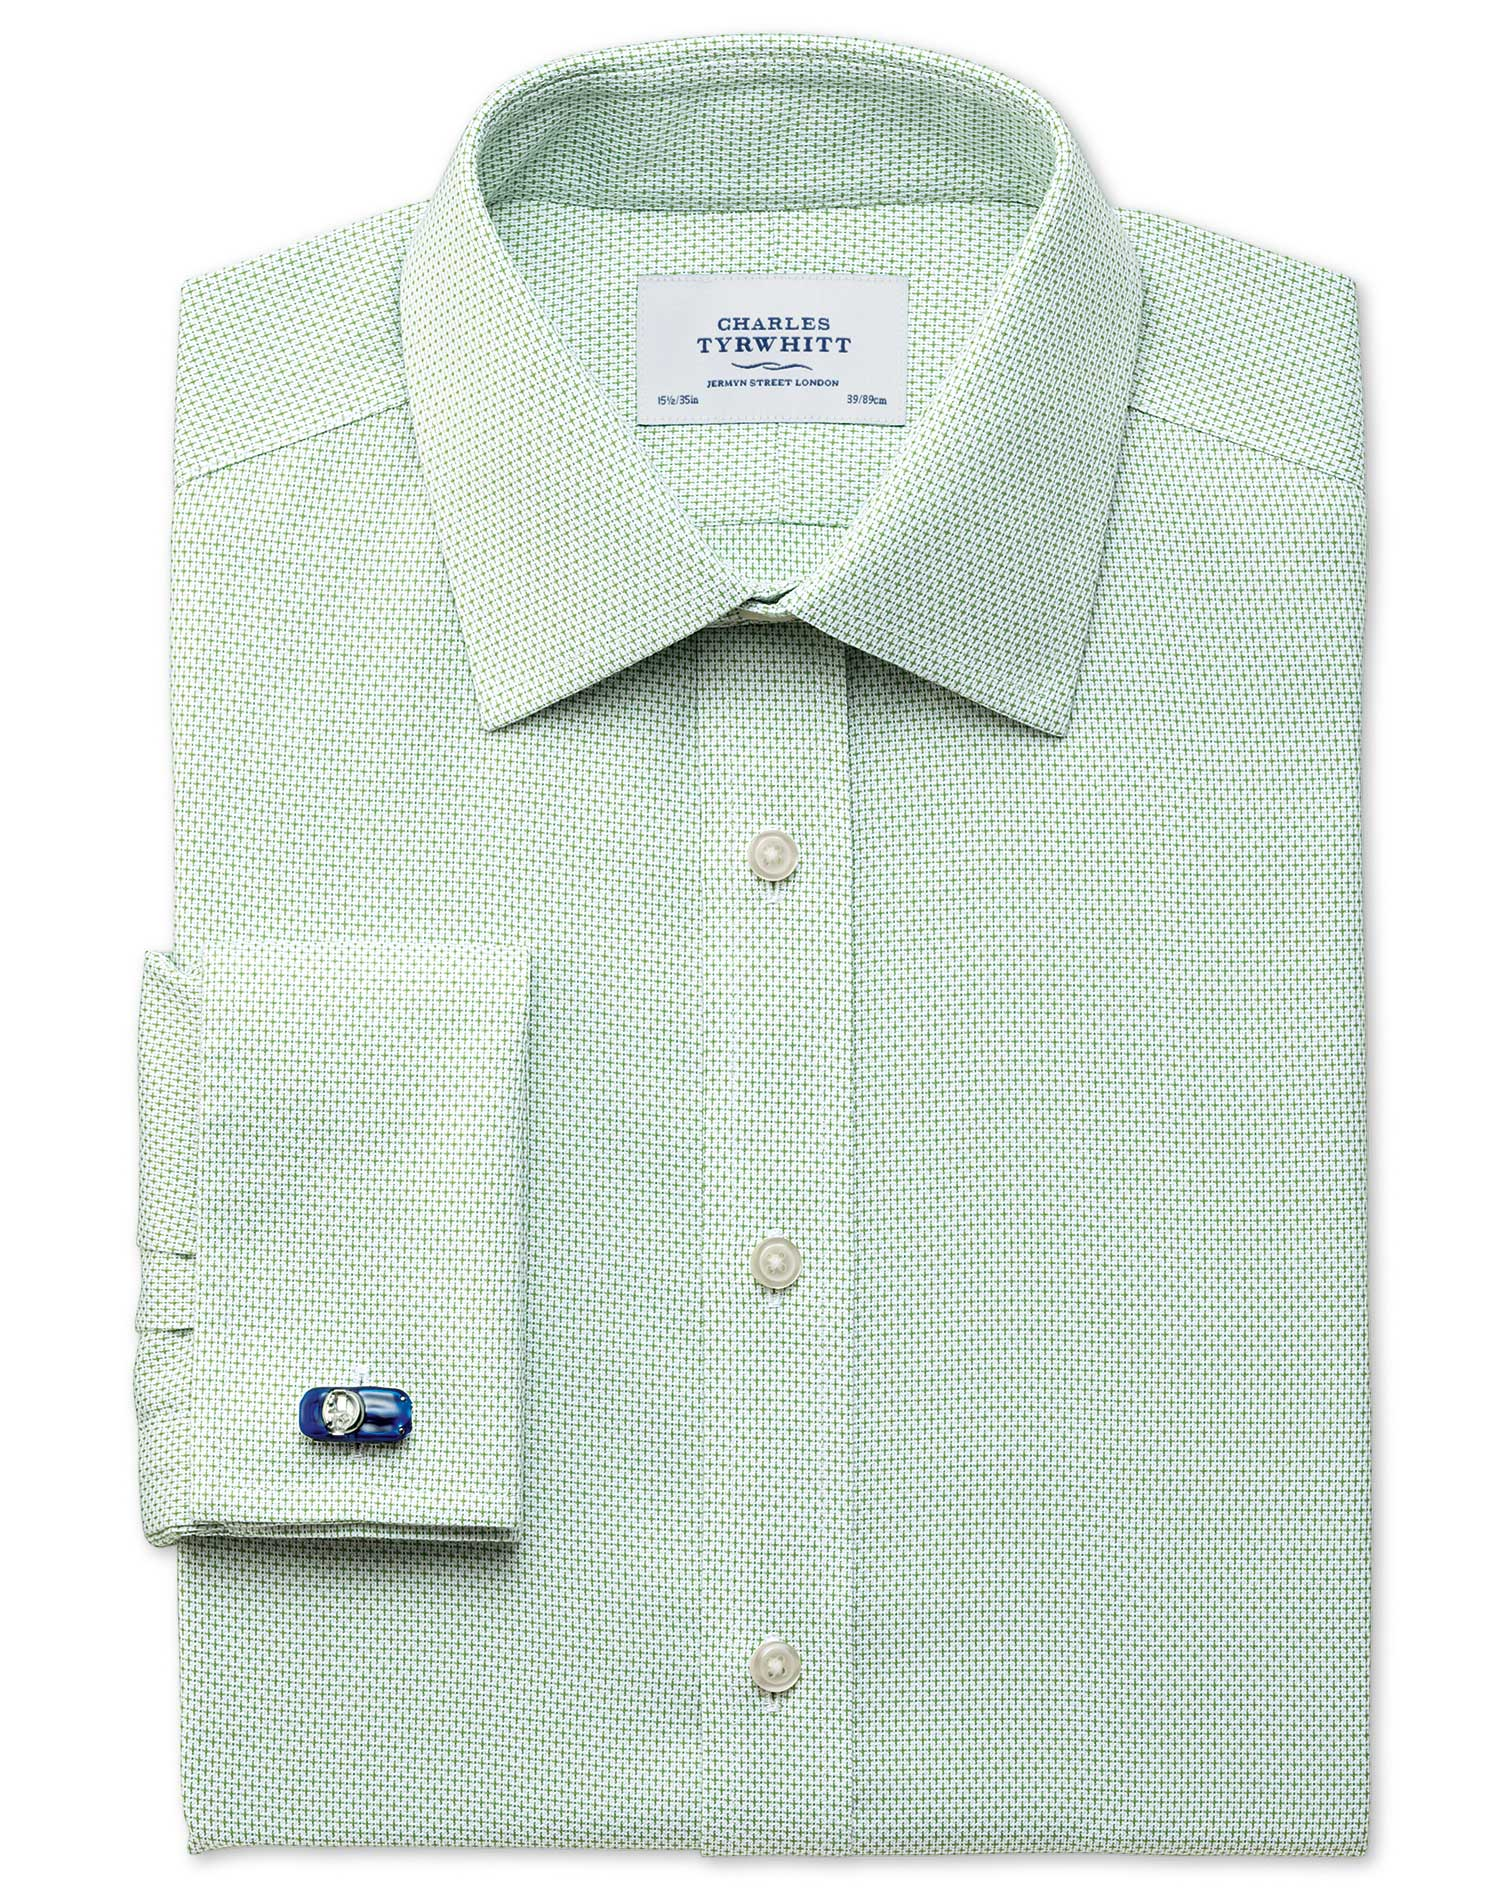 Classic Fit Non-Iron Imperial Weave Light Green Cotton Formal Shirt Single Cuff Size 15.5/35 by Char